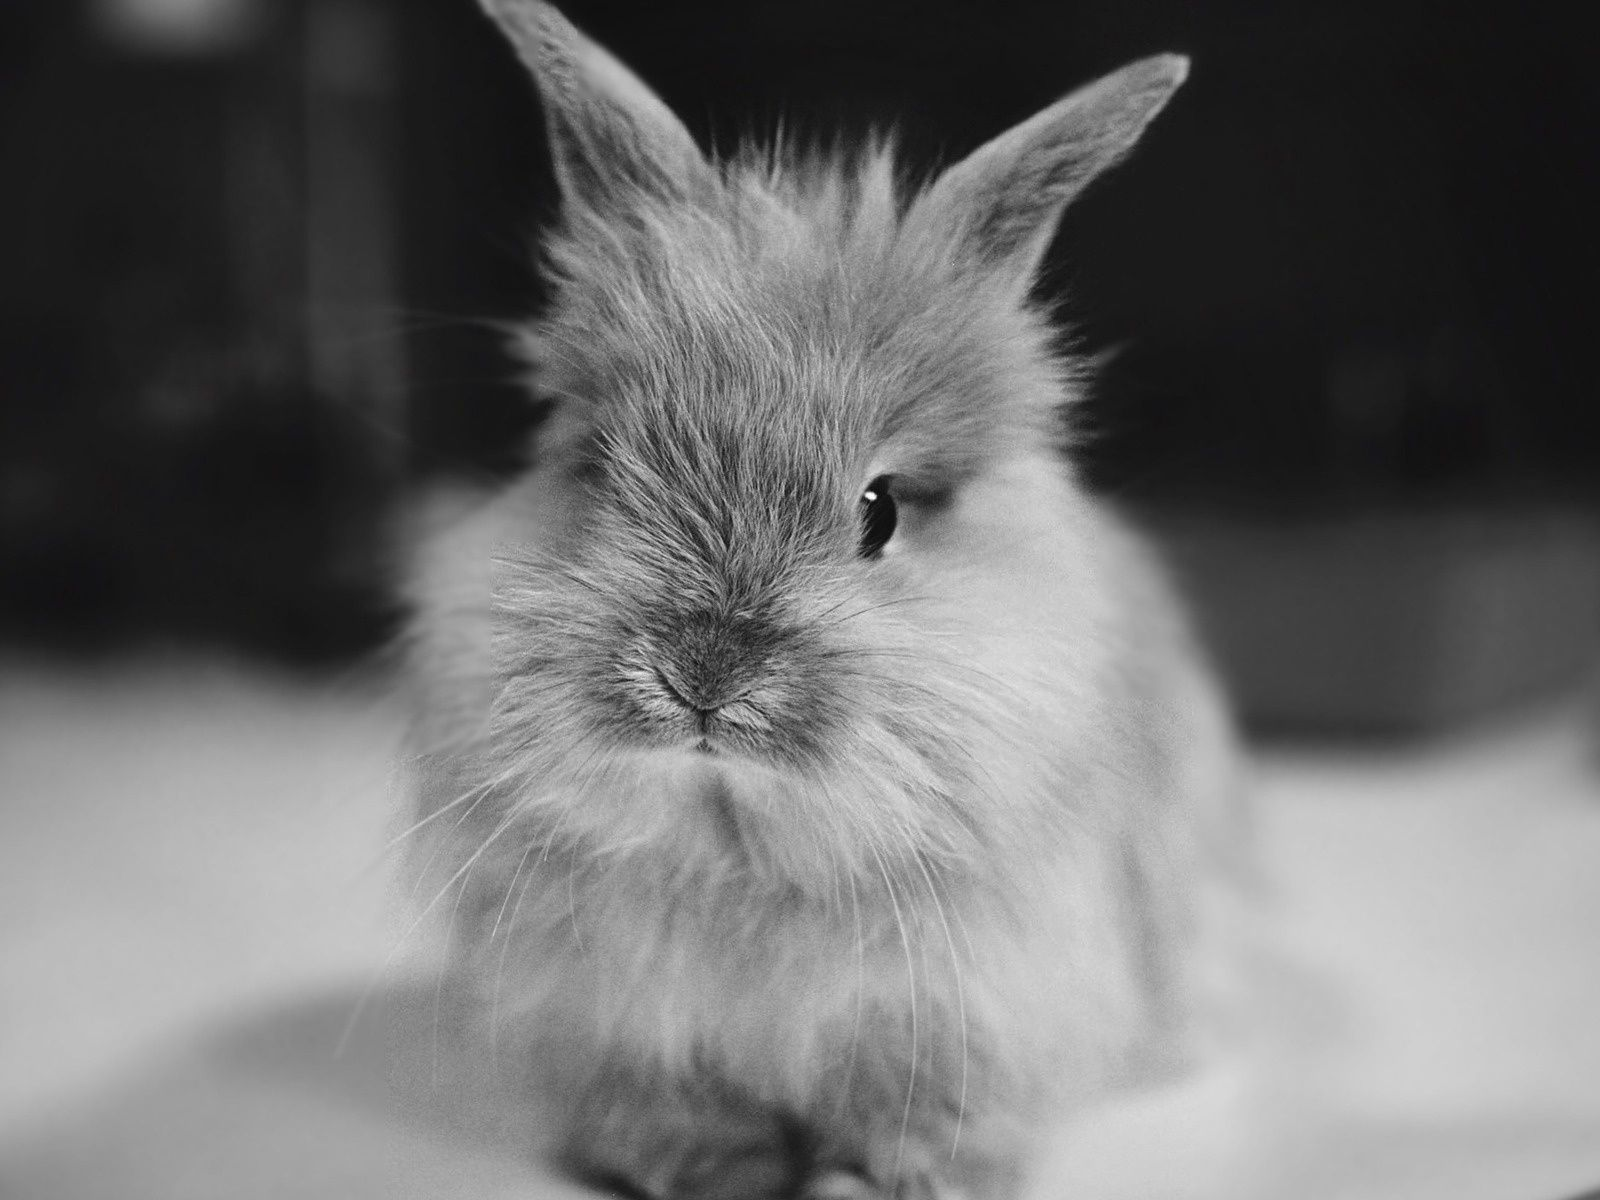 Oh man this might be the cutest bunny ever! Rabbit